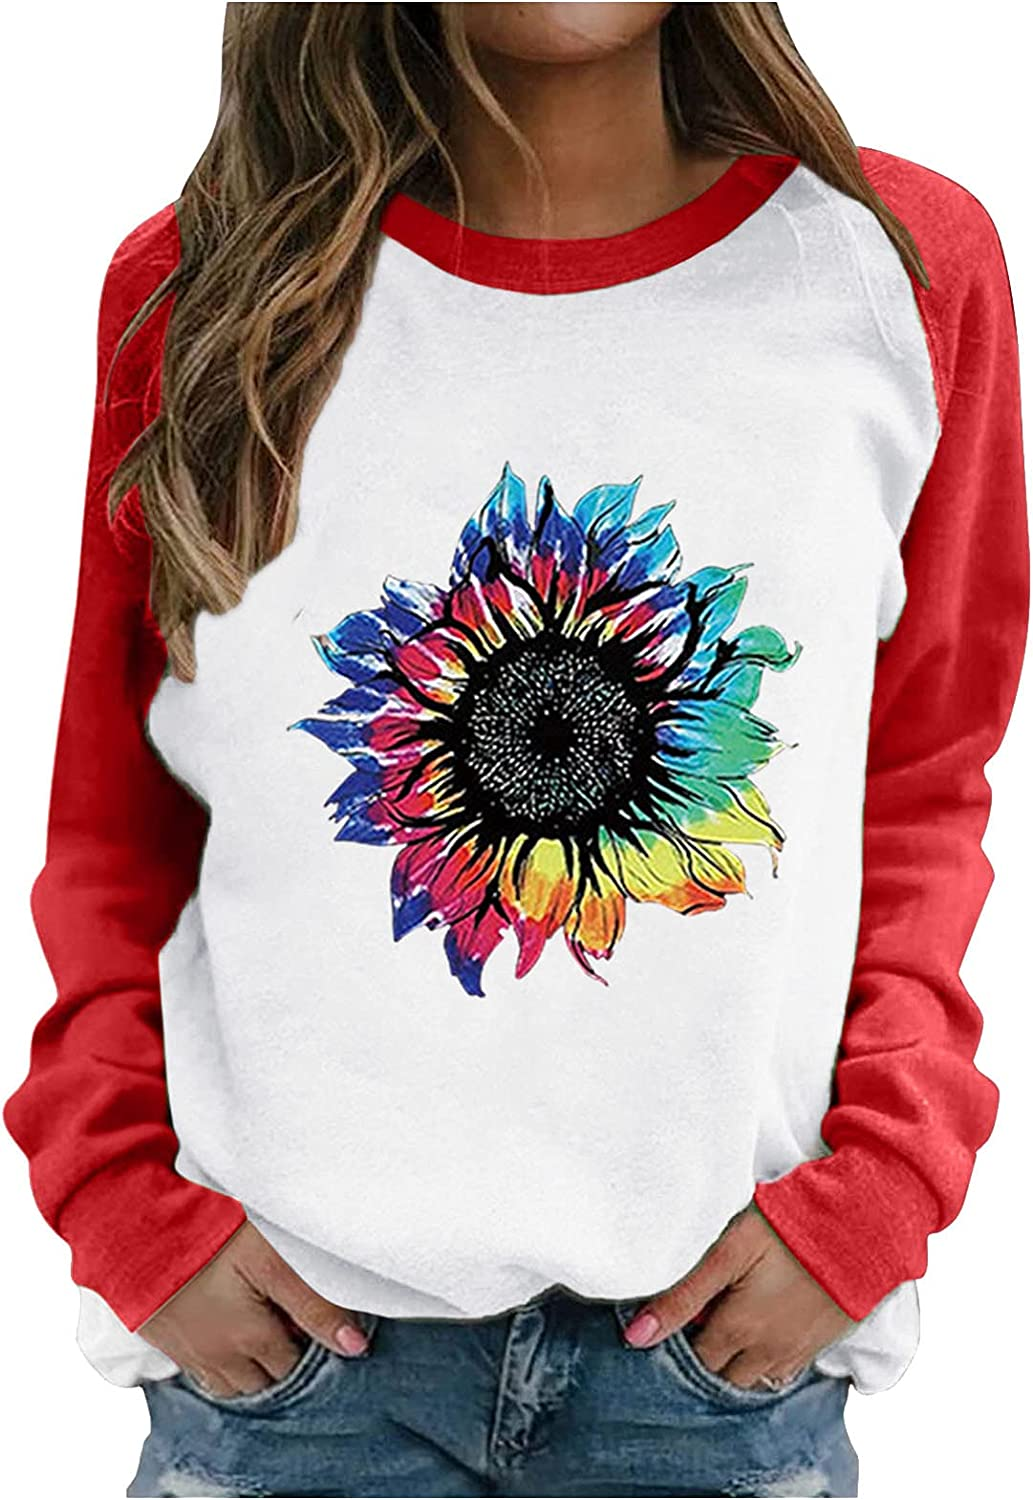 ZYAPCNGN Don't miss the campaign Cute Graphic Pullover Sweatshirts for Girl Womens Teen Super popular specialty store